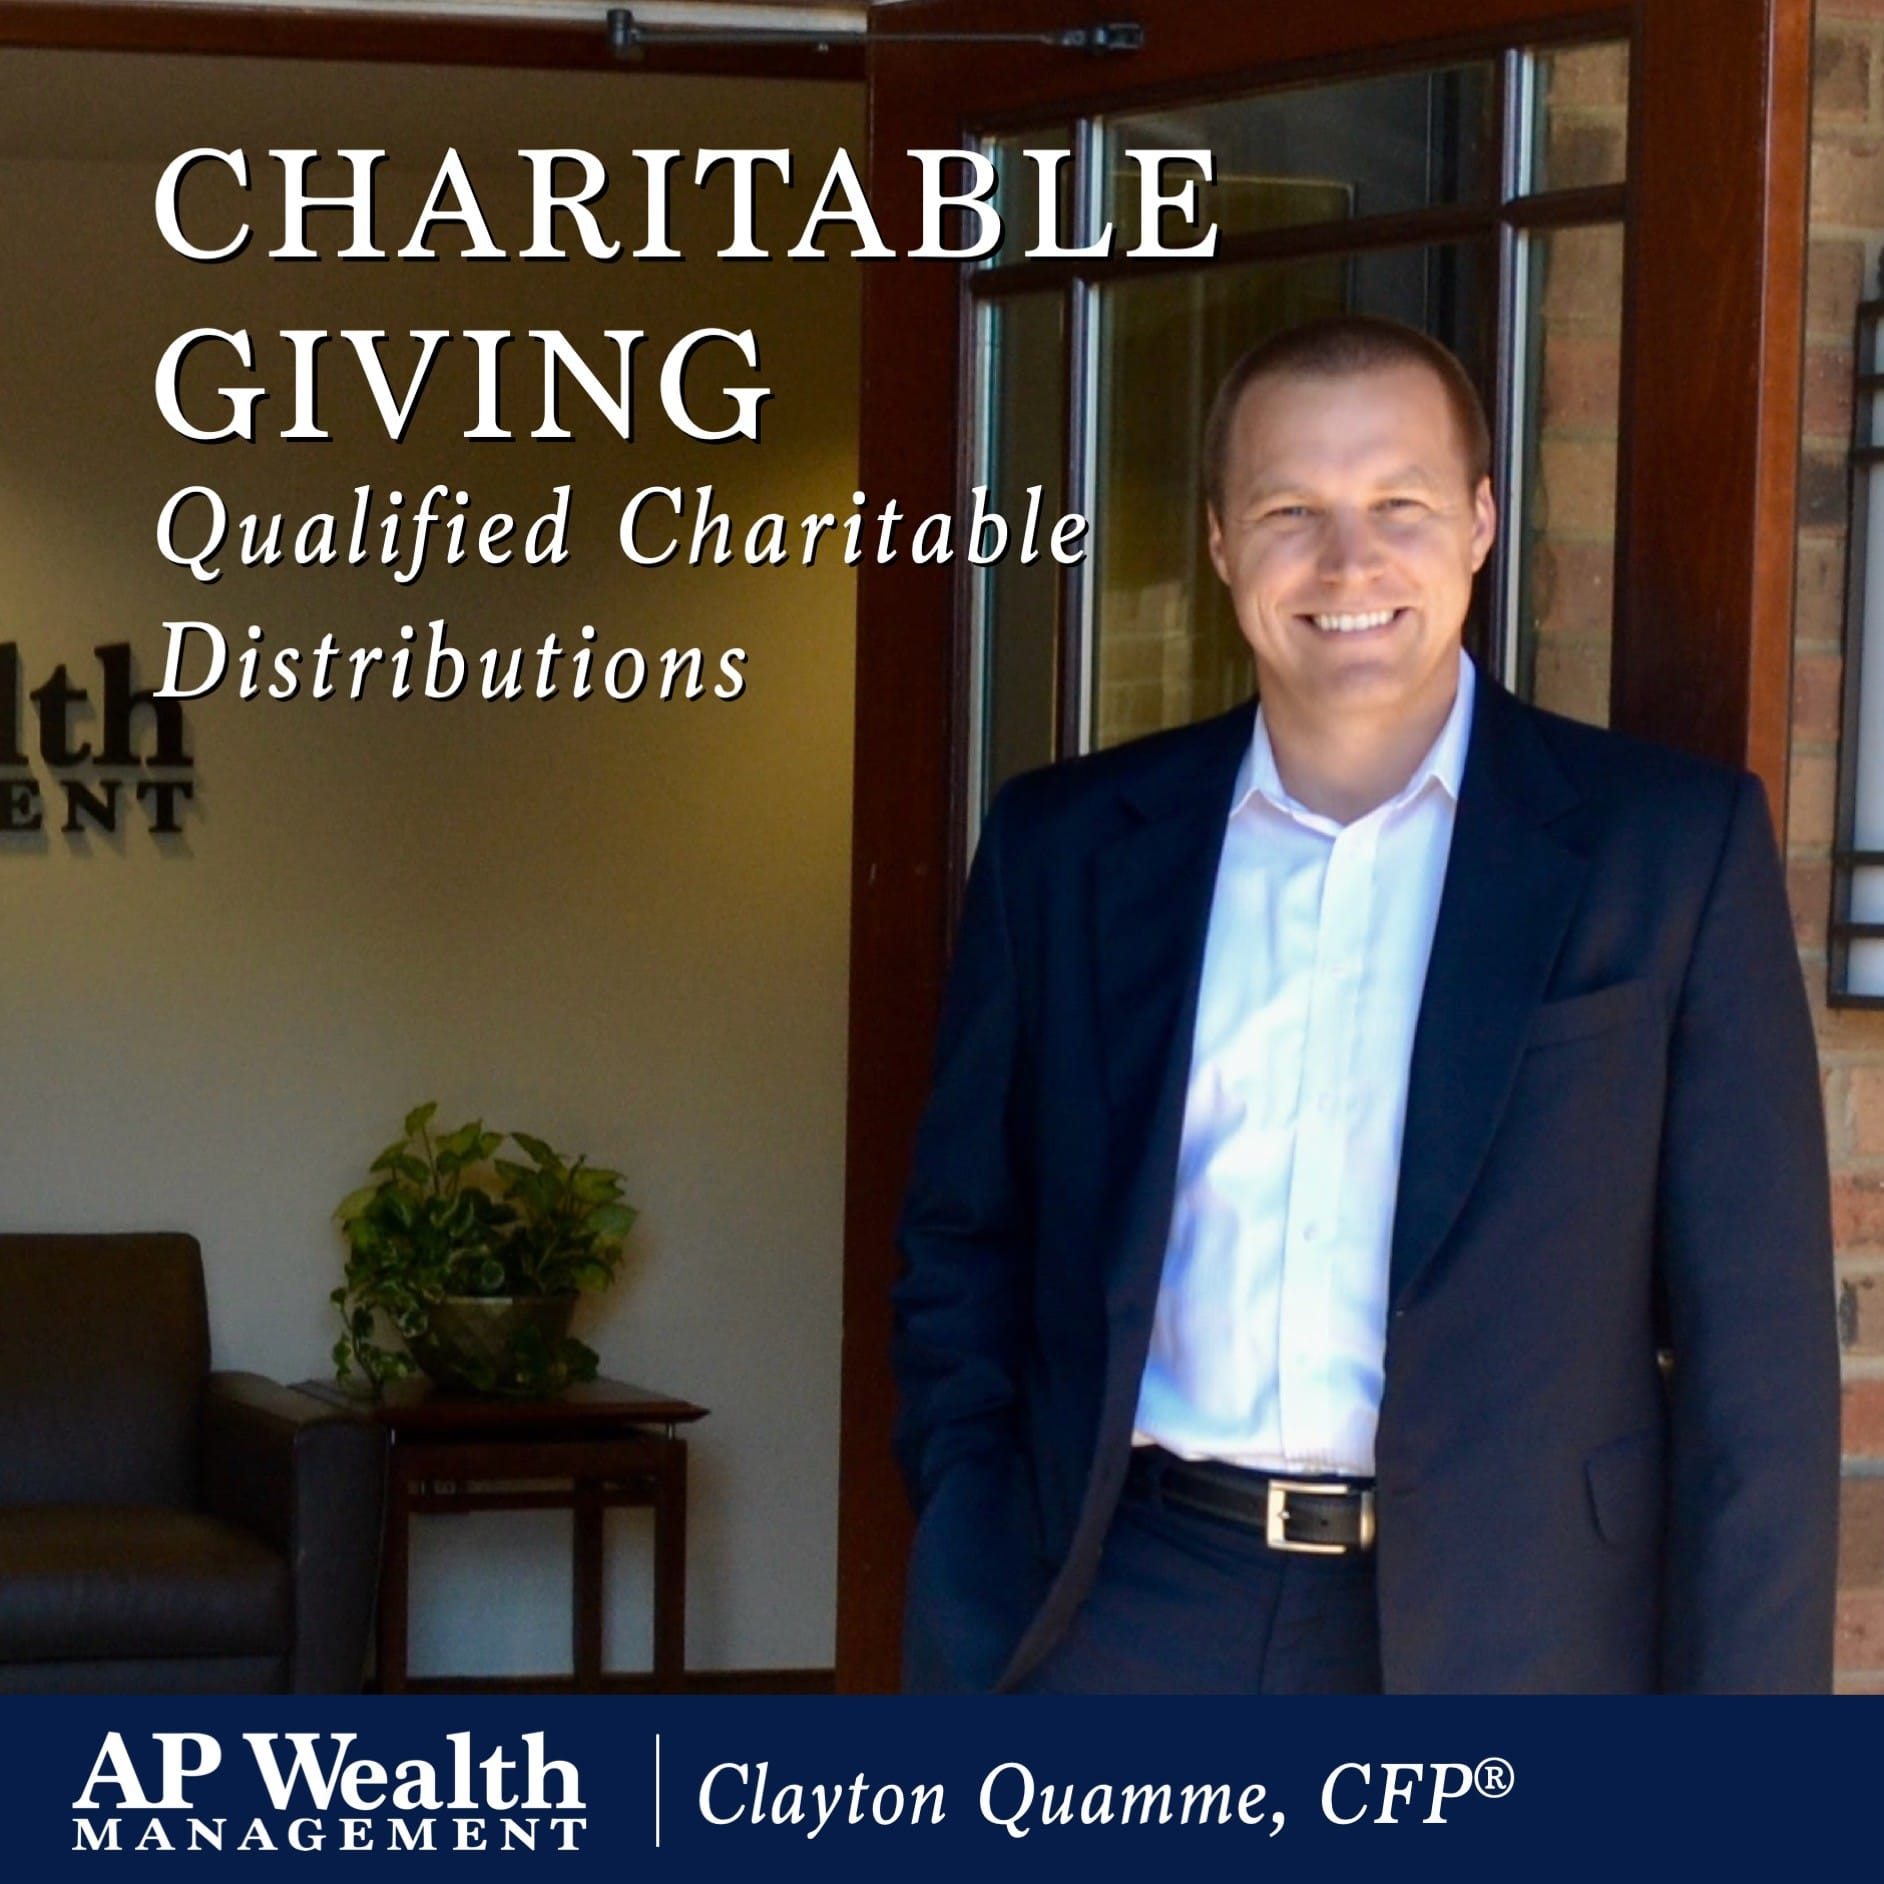 CHARITABLE GIVING | Qualified Charitable Distributions